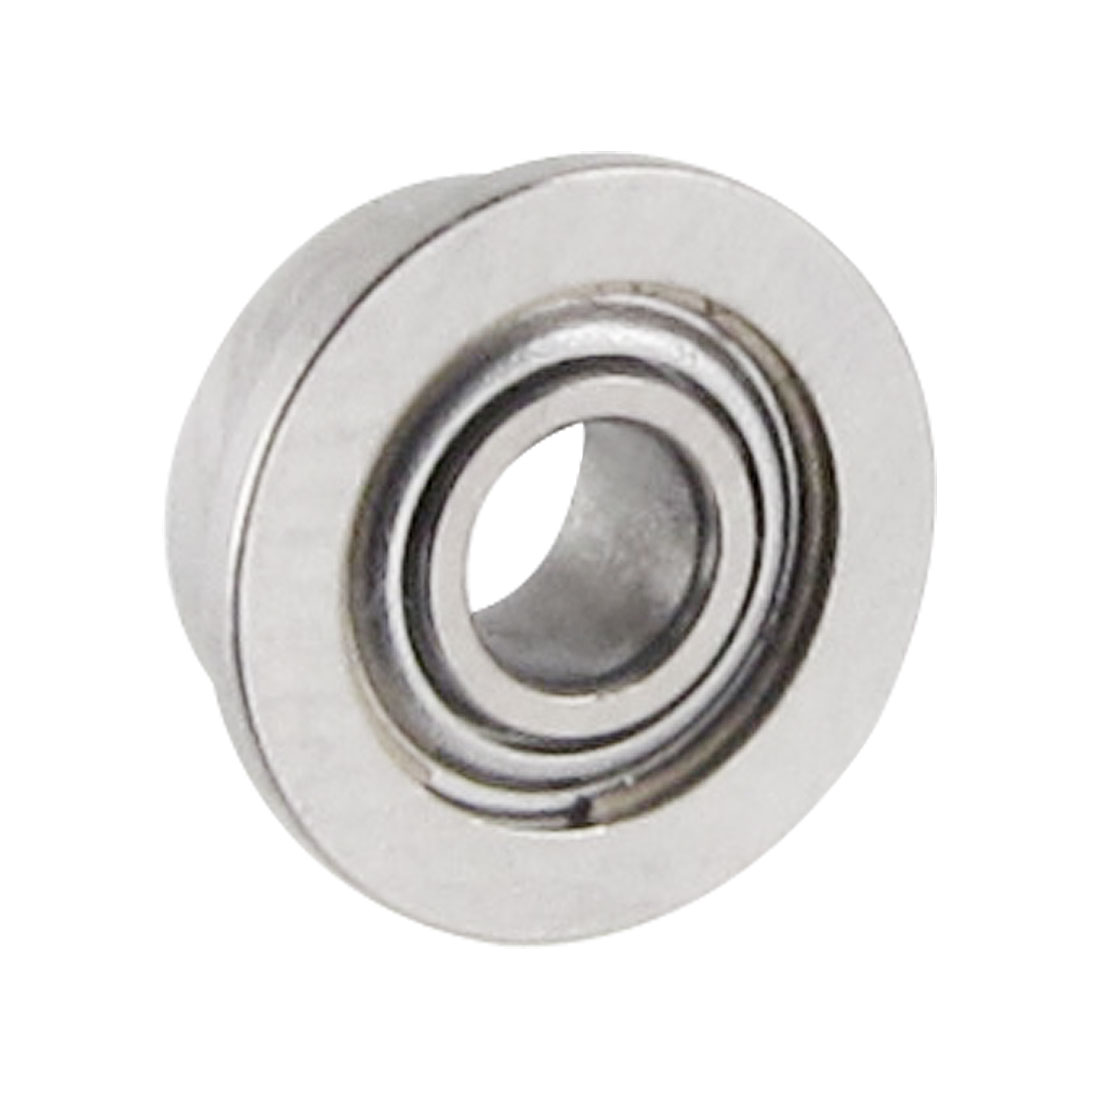 Flanged 2mm x 5mm x 2.3mm Stainless Steel Shields Deep Groove Ball Bearing